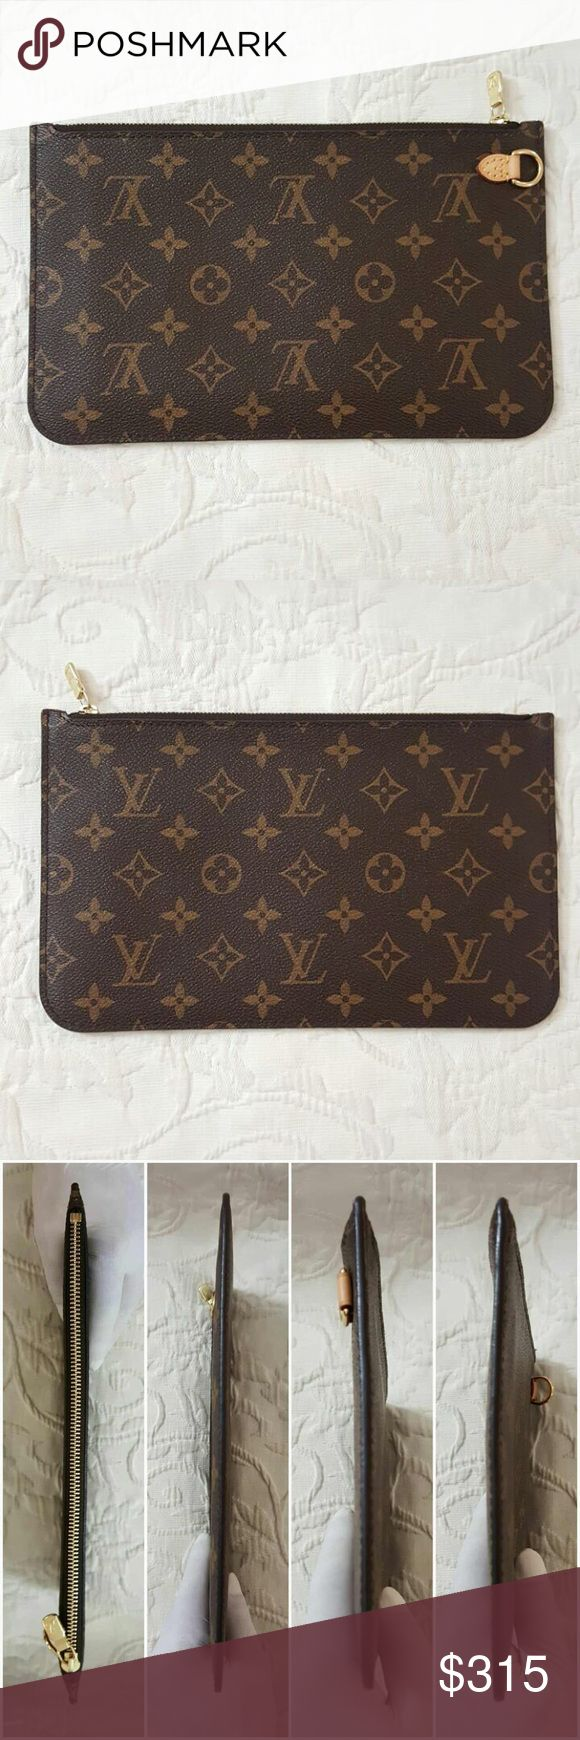 Louis Vuitton Neverfull Monogram Wristlet Pouch GM 100% Authentic or your Money Back. Excellent Pre-Loved Condition and Clean Inside(Please Check Photos for Best Description) Wristlet/Pouch Only & No Strap. Serious Buyer Only. PLEASE FOLLOW US FOR MORE GREAT DEALS TO COME!!! Louis Vuitton Bags Clutches & Wristlets